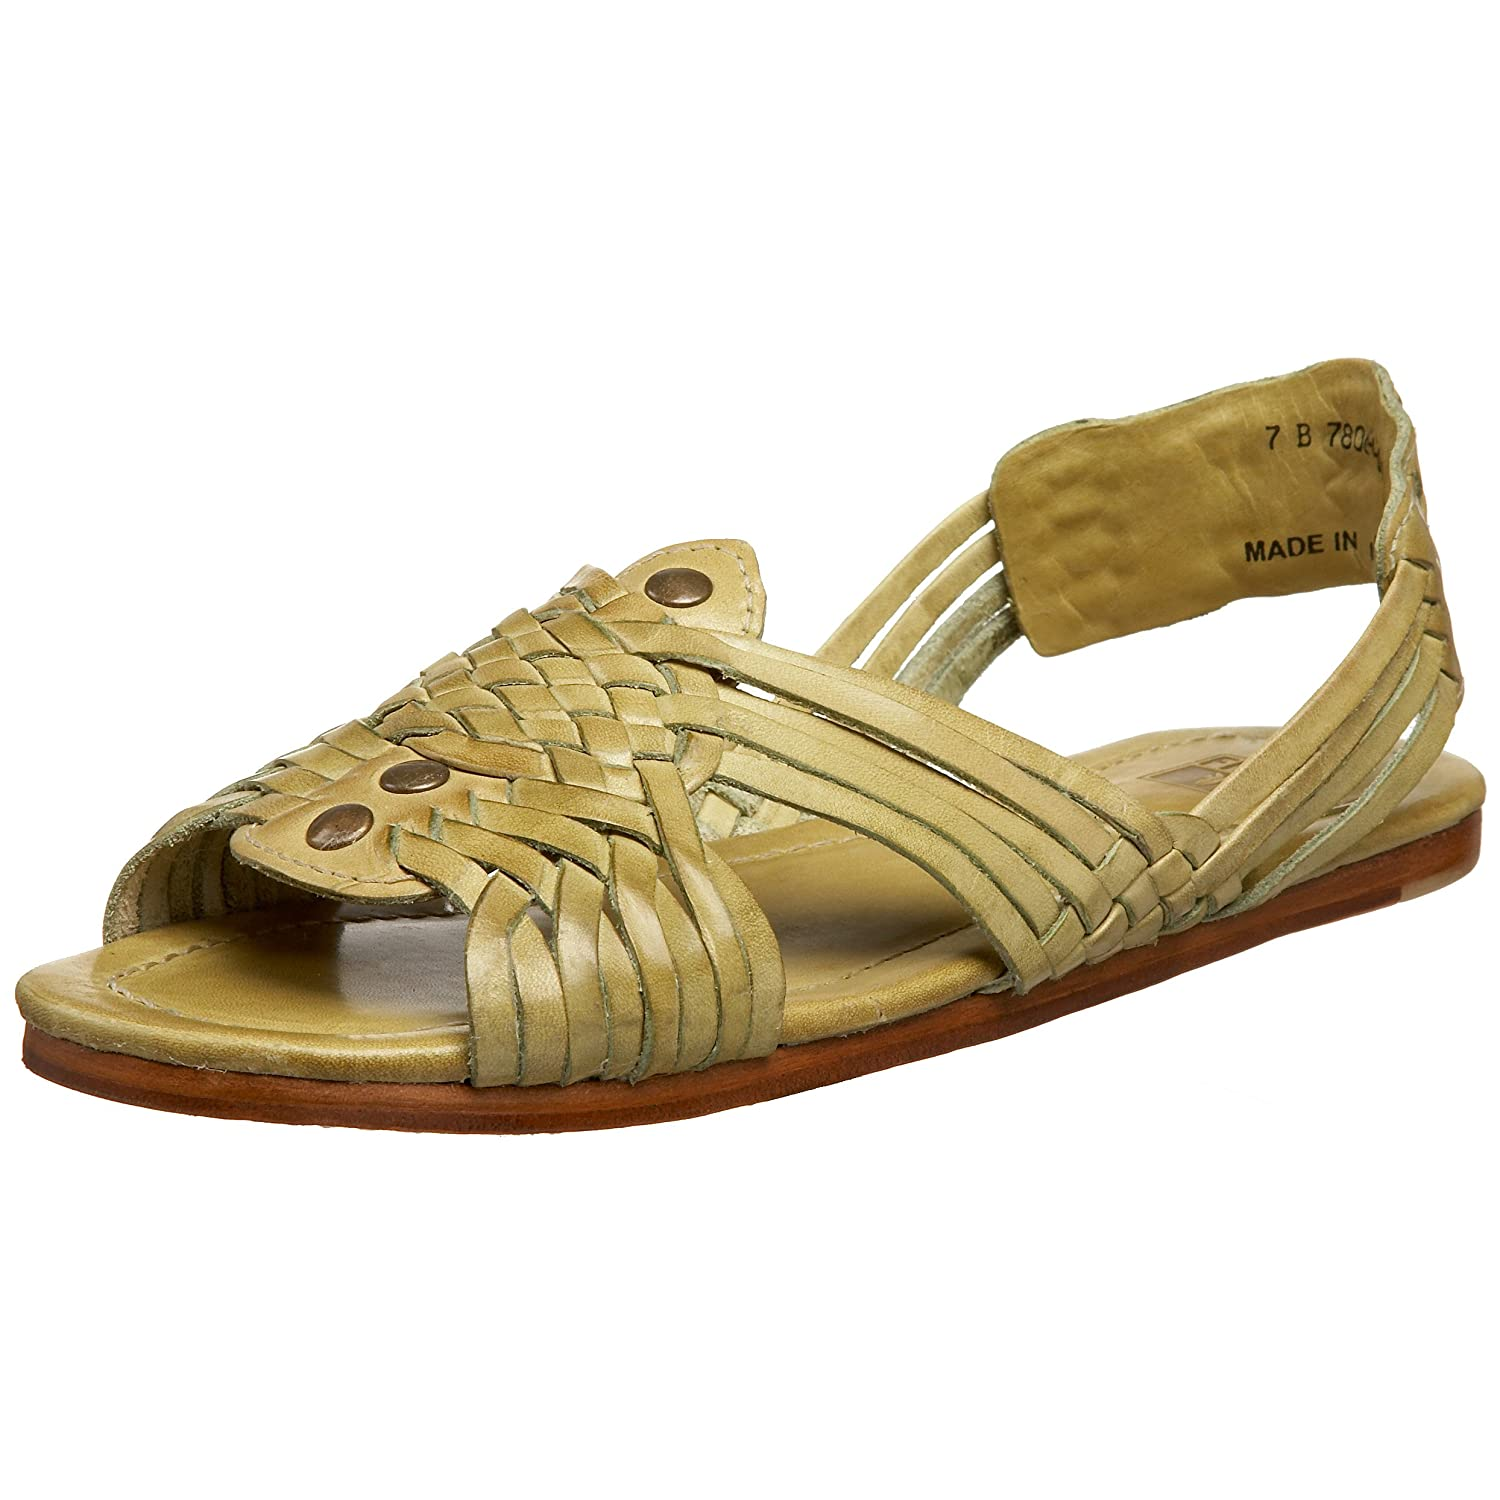 FRYE Women's Jacey Flat Slingback Sandal - Free Overnight Shipping & Return Shipping: Endless.com